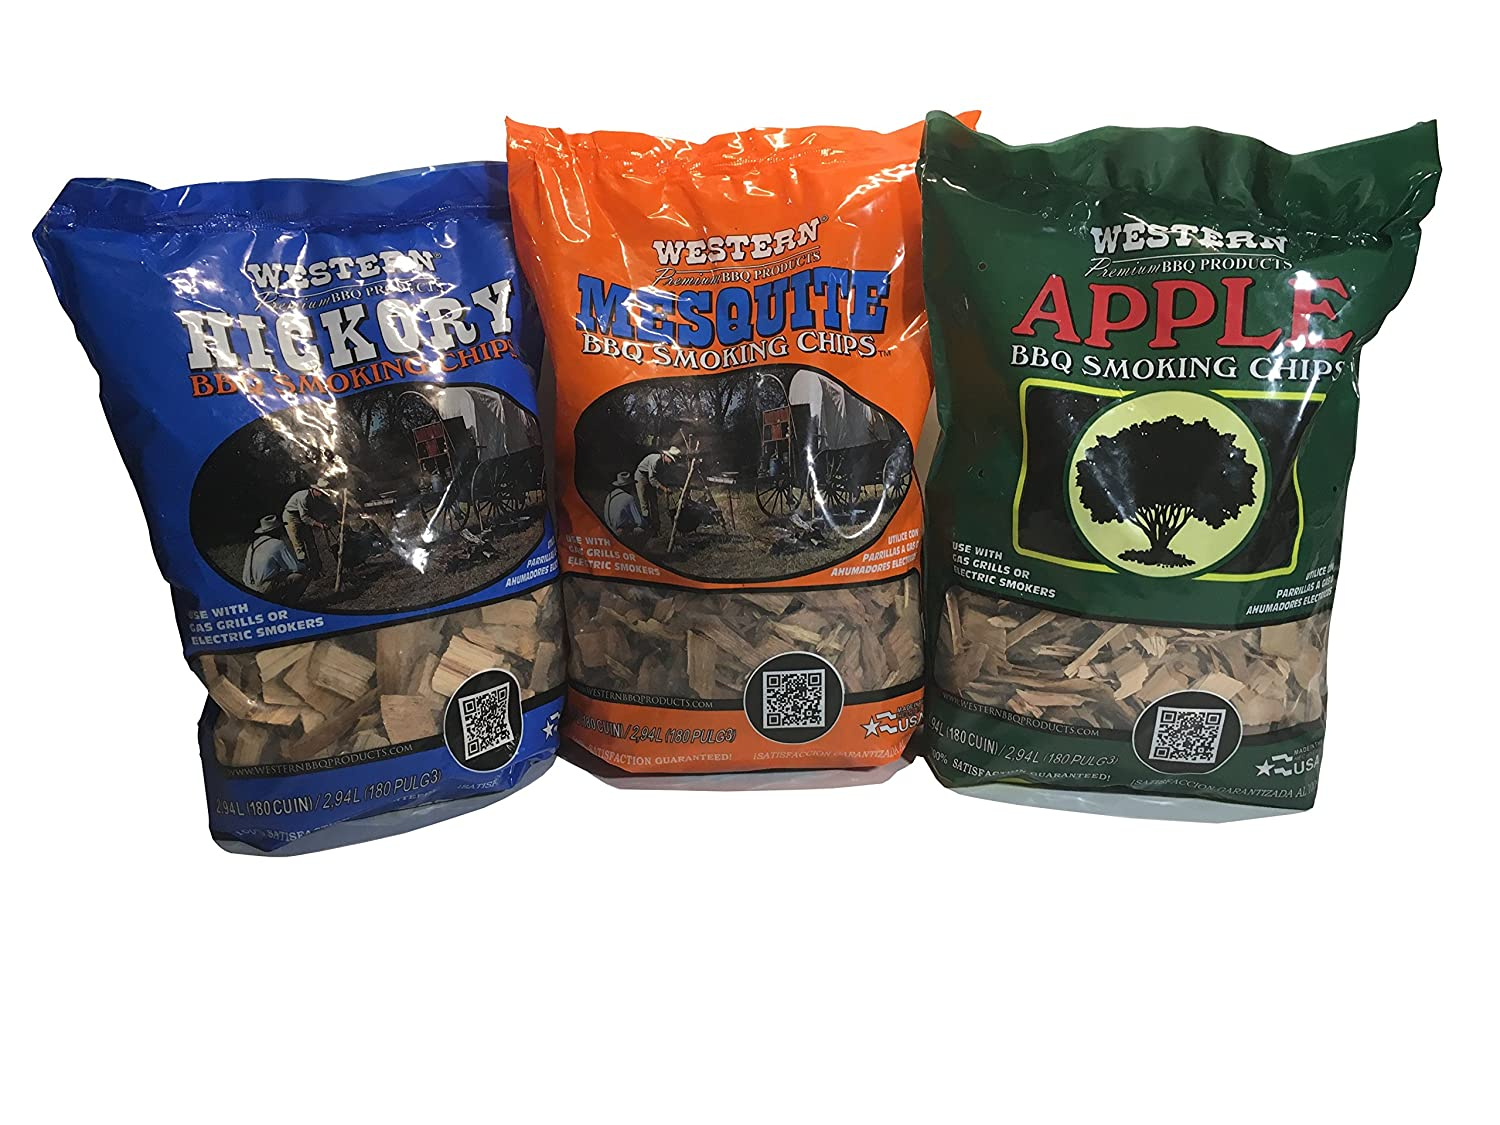 Western Perfect BBQ Smoking Wood Chips Variety Pack - Bundle (3) - Most Popular Flavors - Apple, Hickory & Mesquite